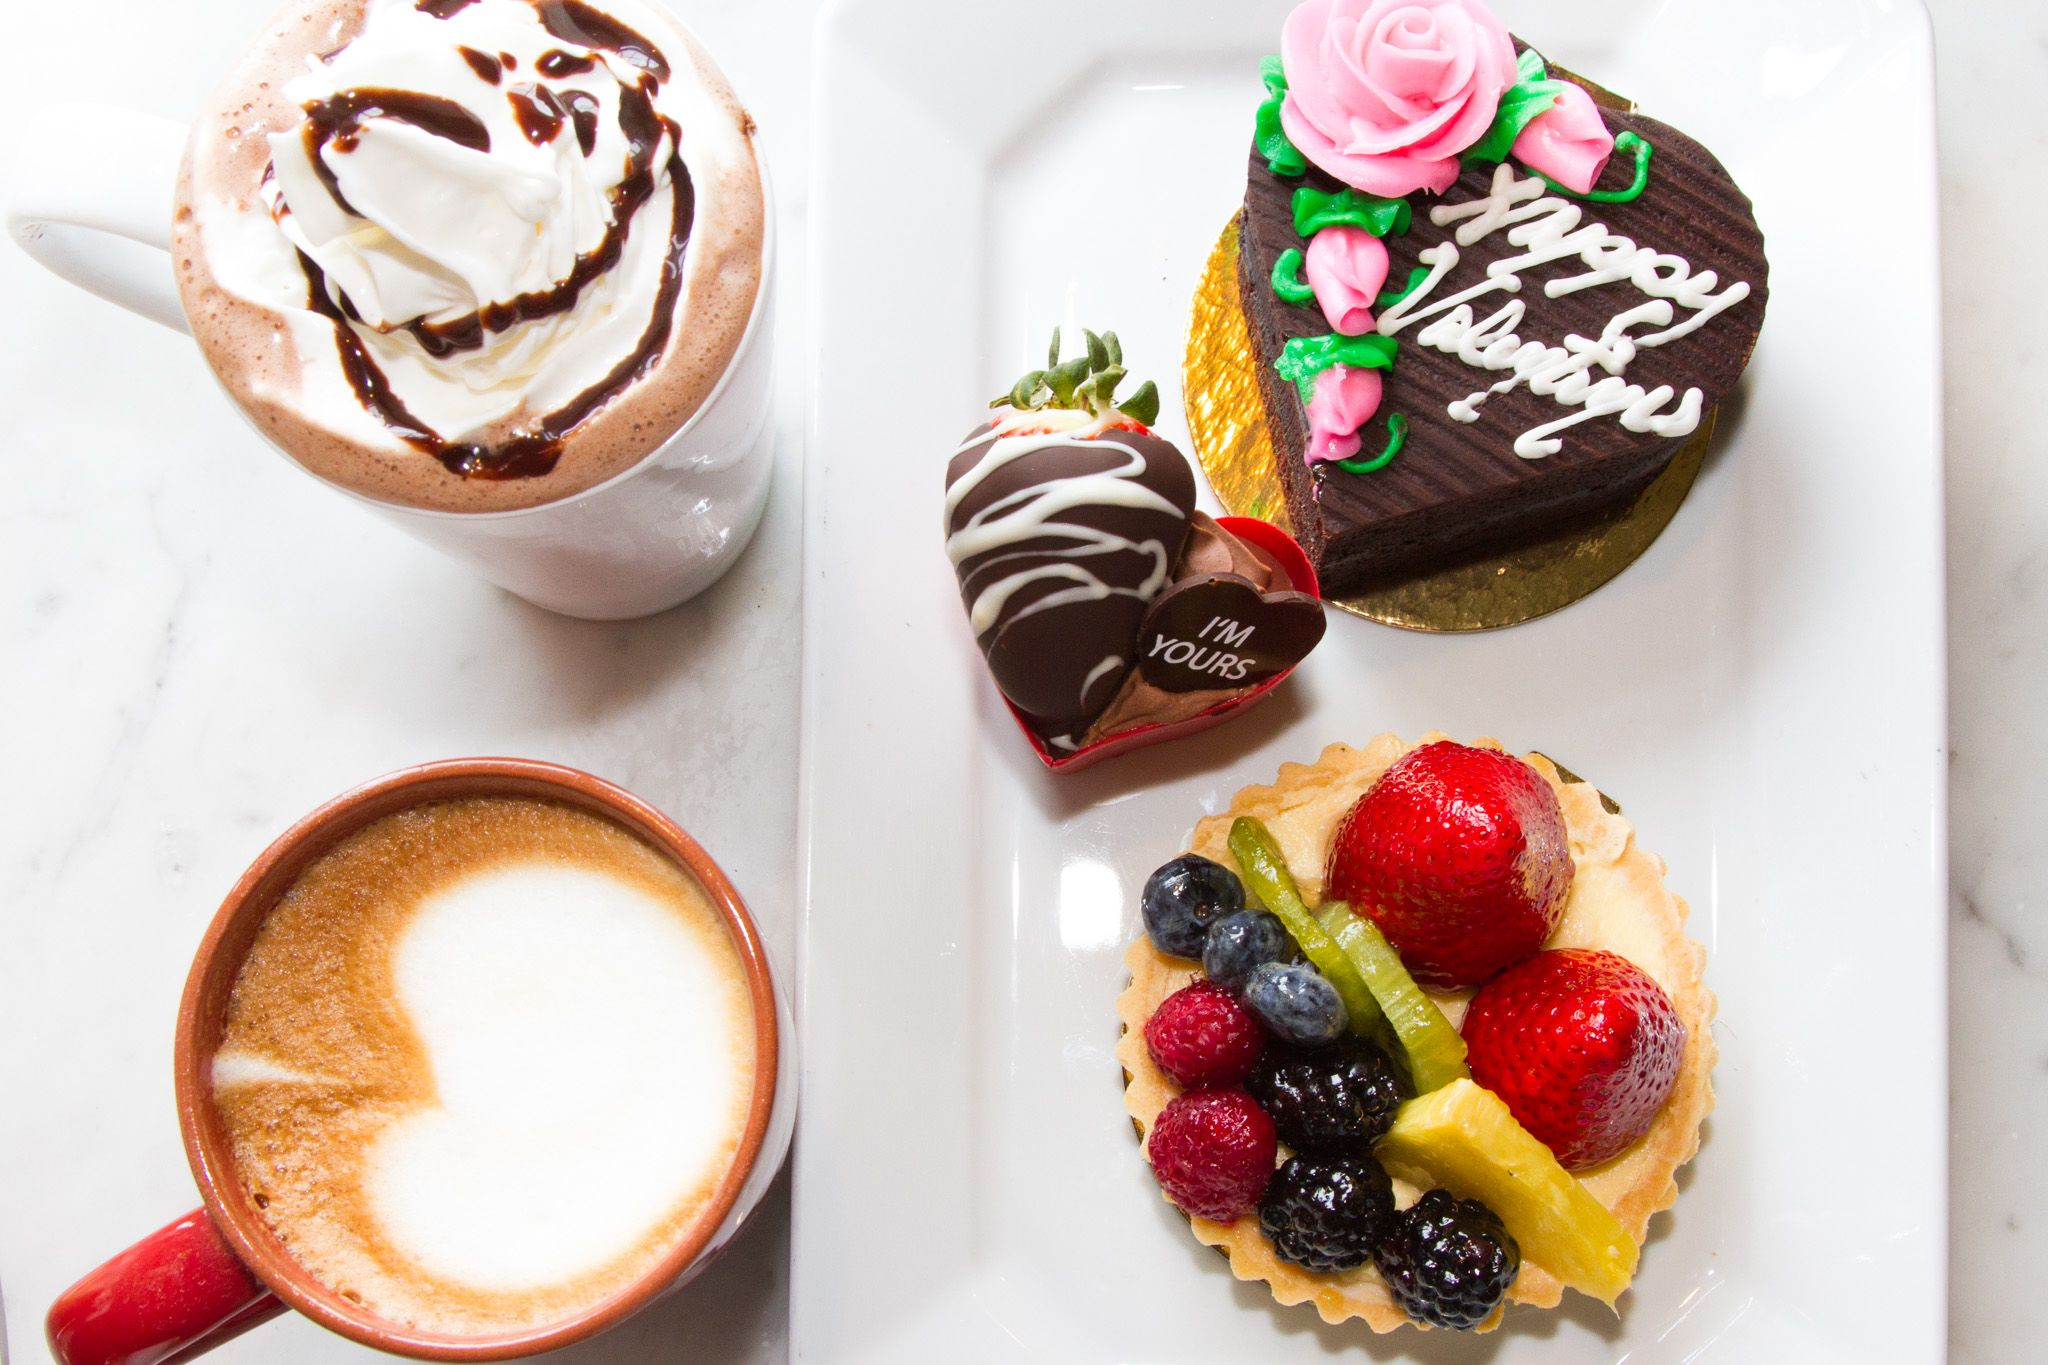 Valentine's Day! Drinks for two at our coffee bar, fresh fruit tart, valentine mousse heart cup, and chocolate cake!